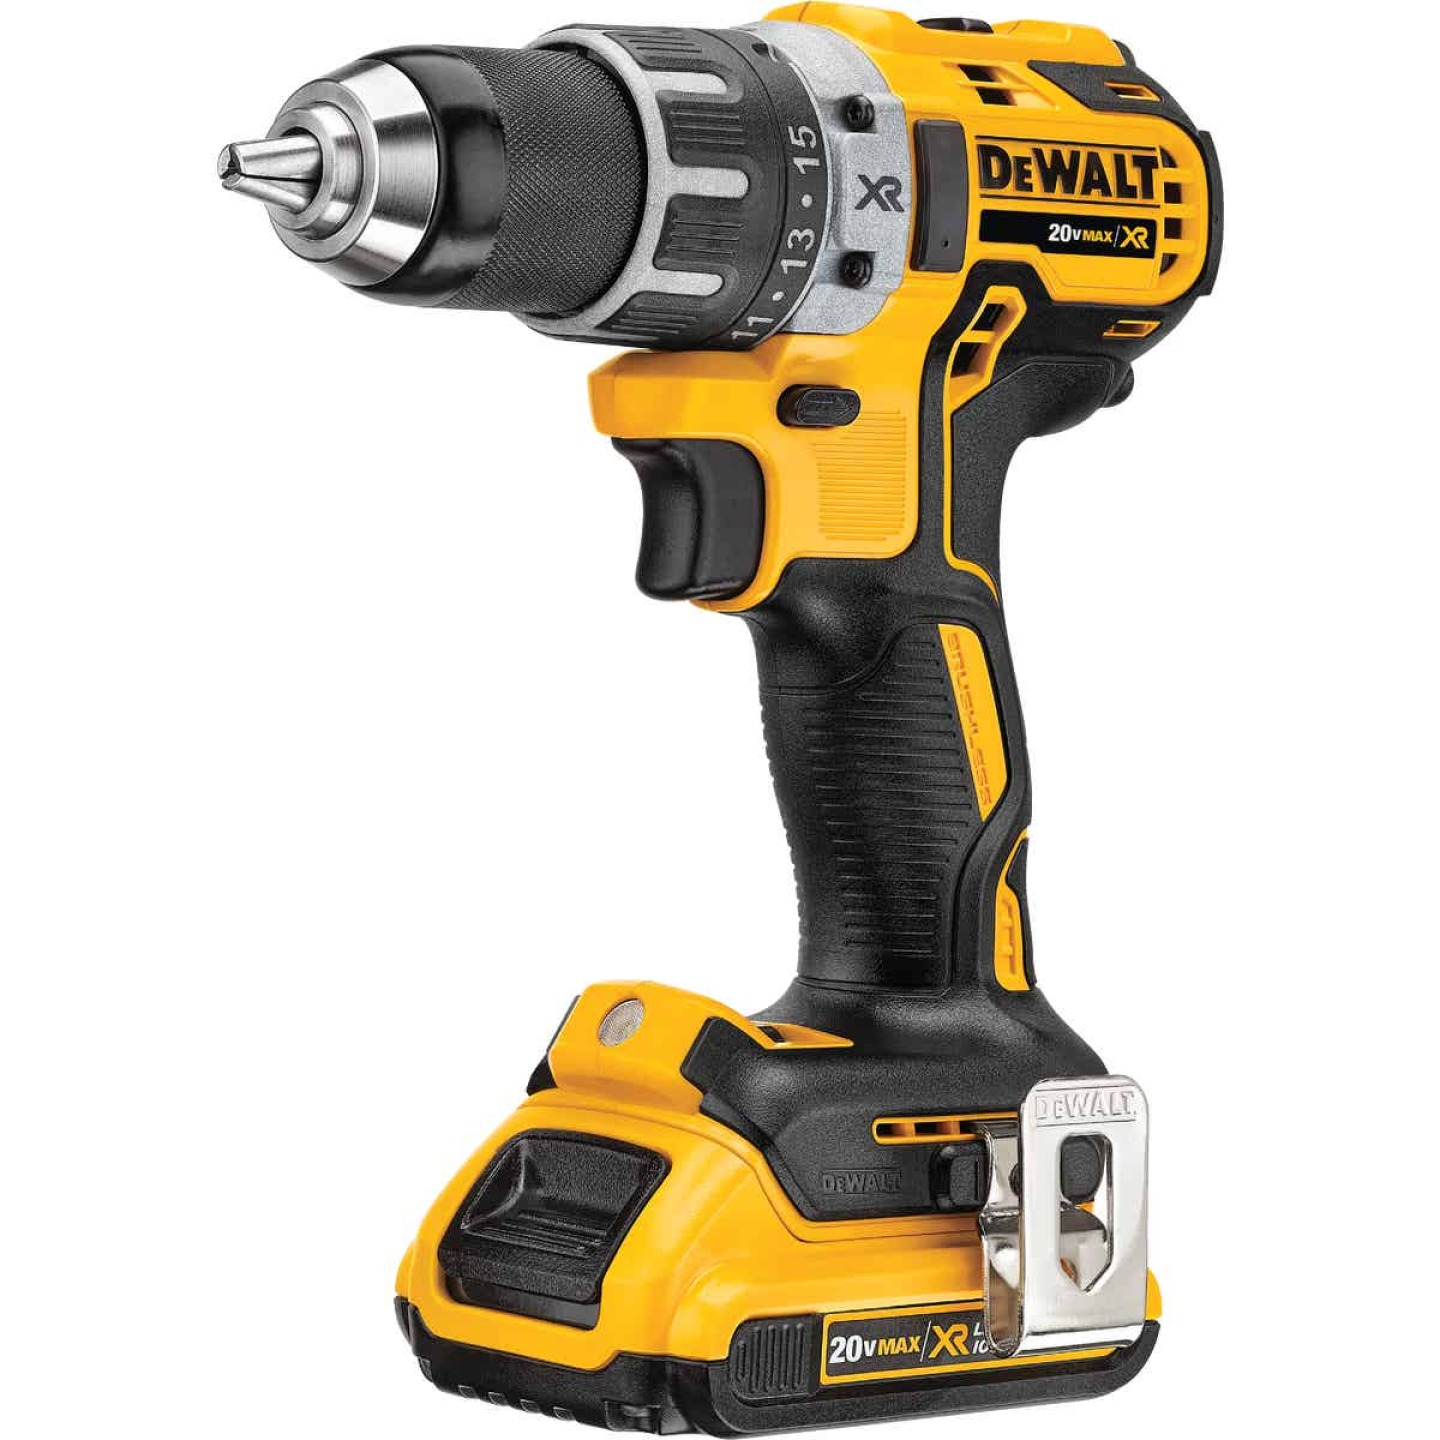 DeWalt 20 Volt MAX XR Lithium-Ion Brushless 1/2 In. Cordless Drill Kit Image 3